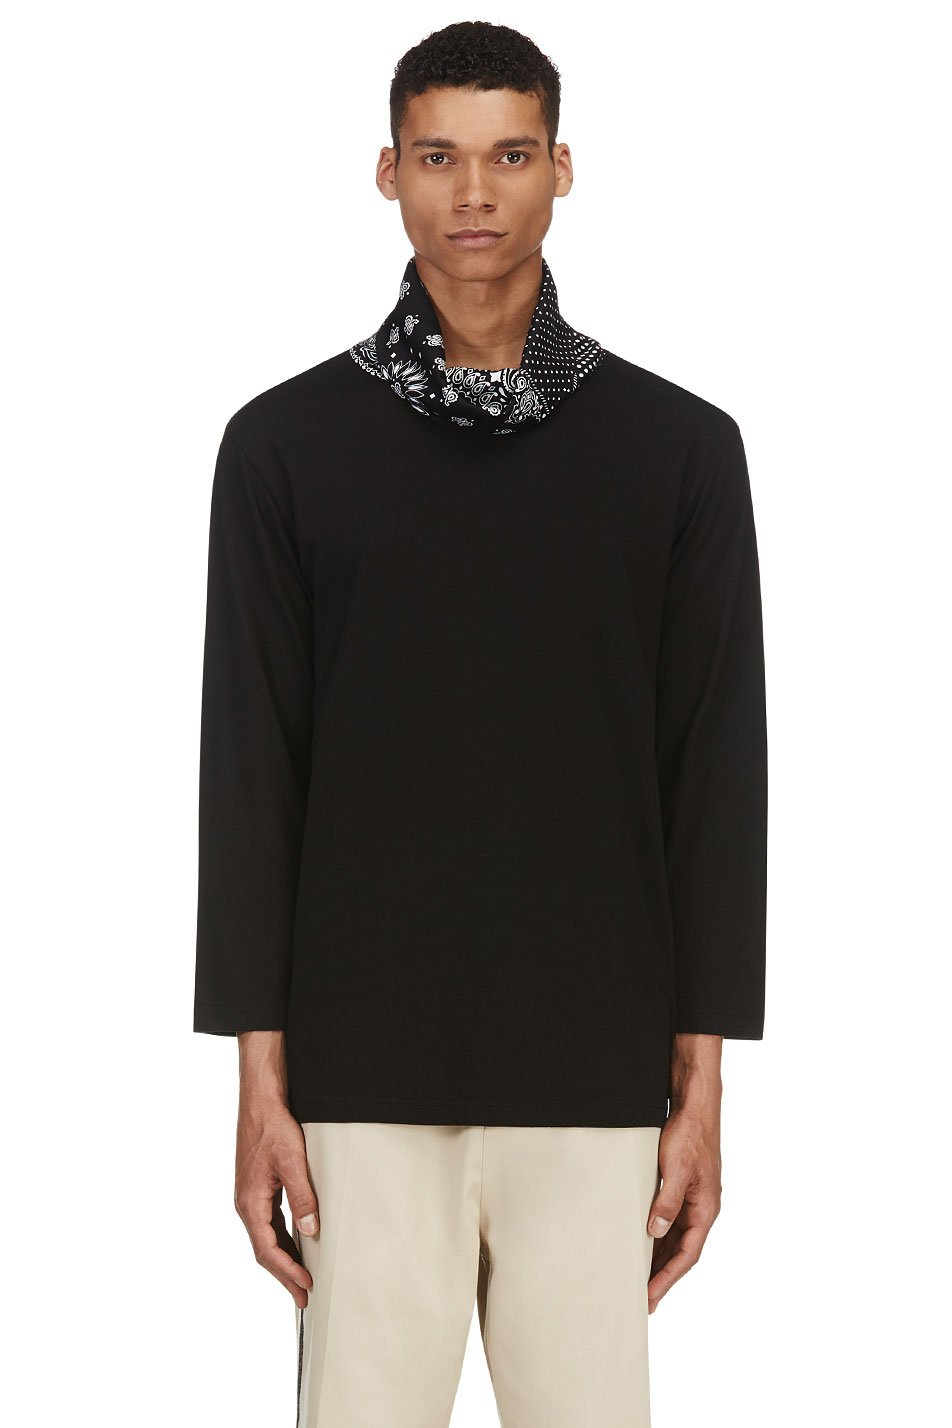 sasquatchfabrix black bandana turtleneck